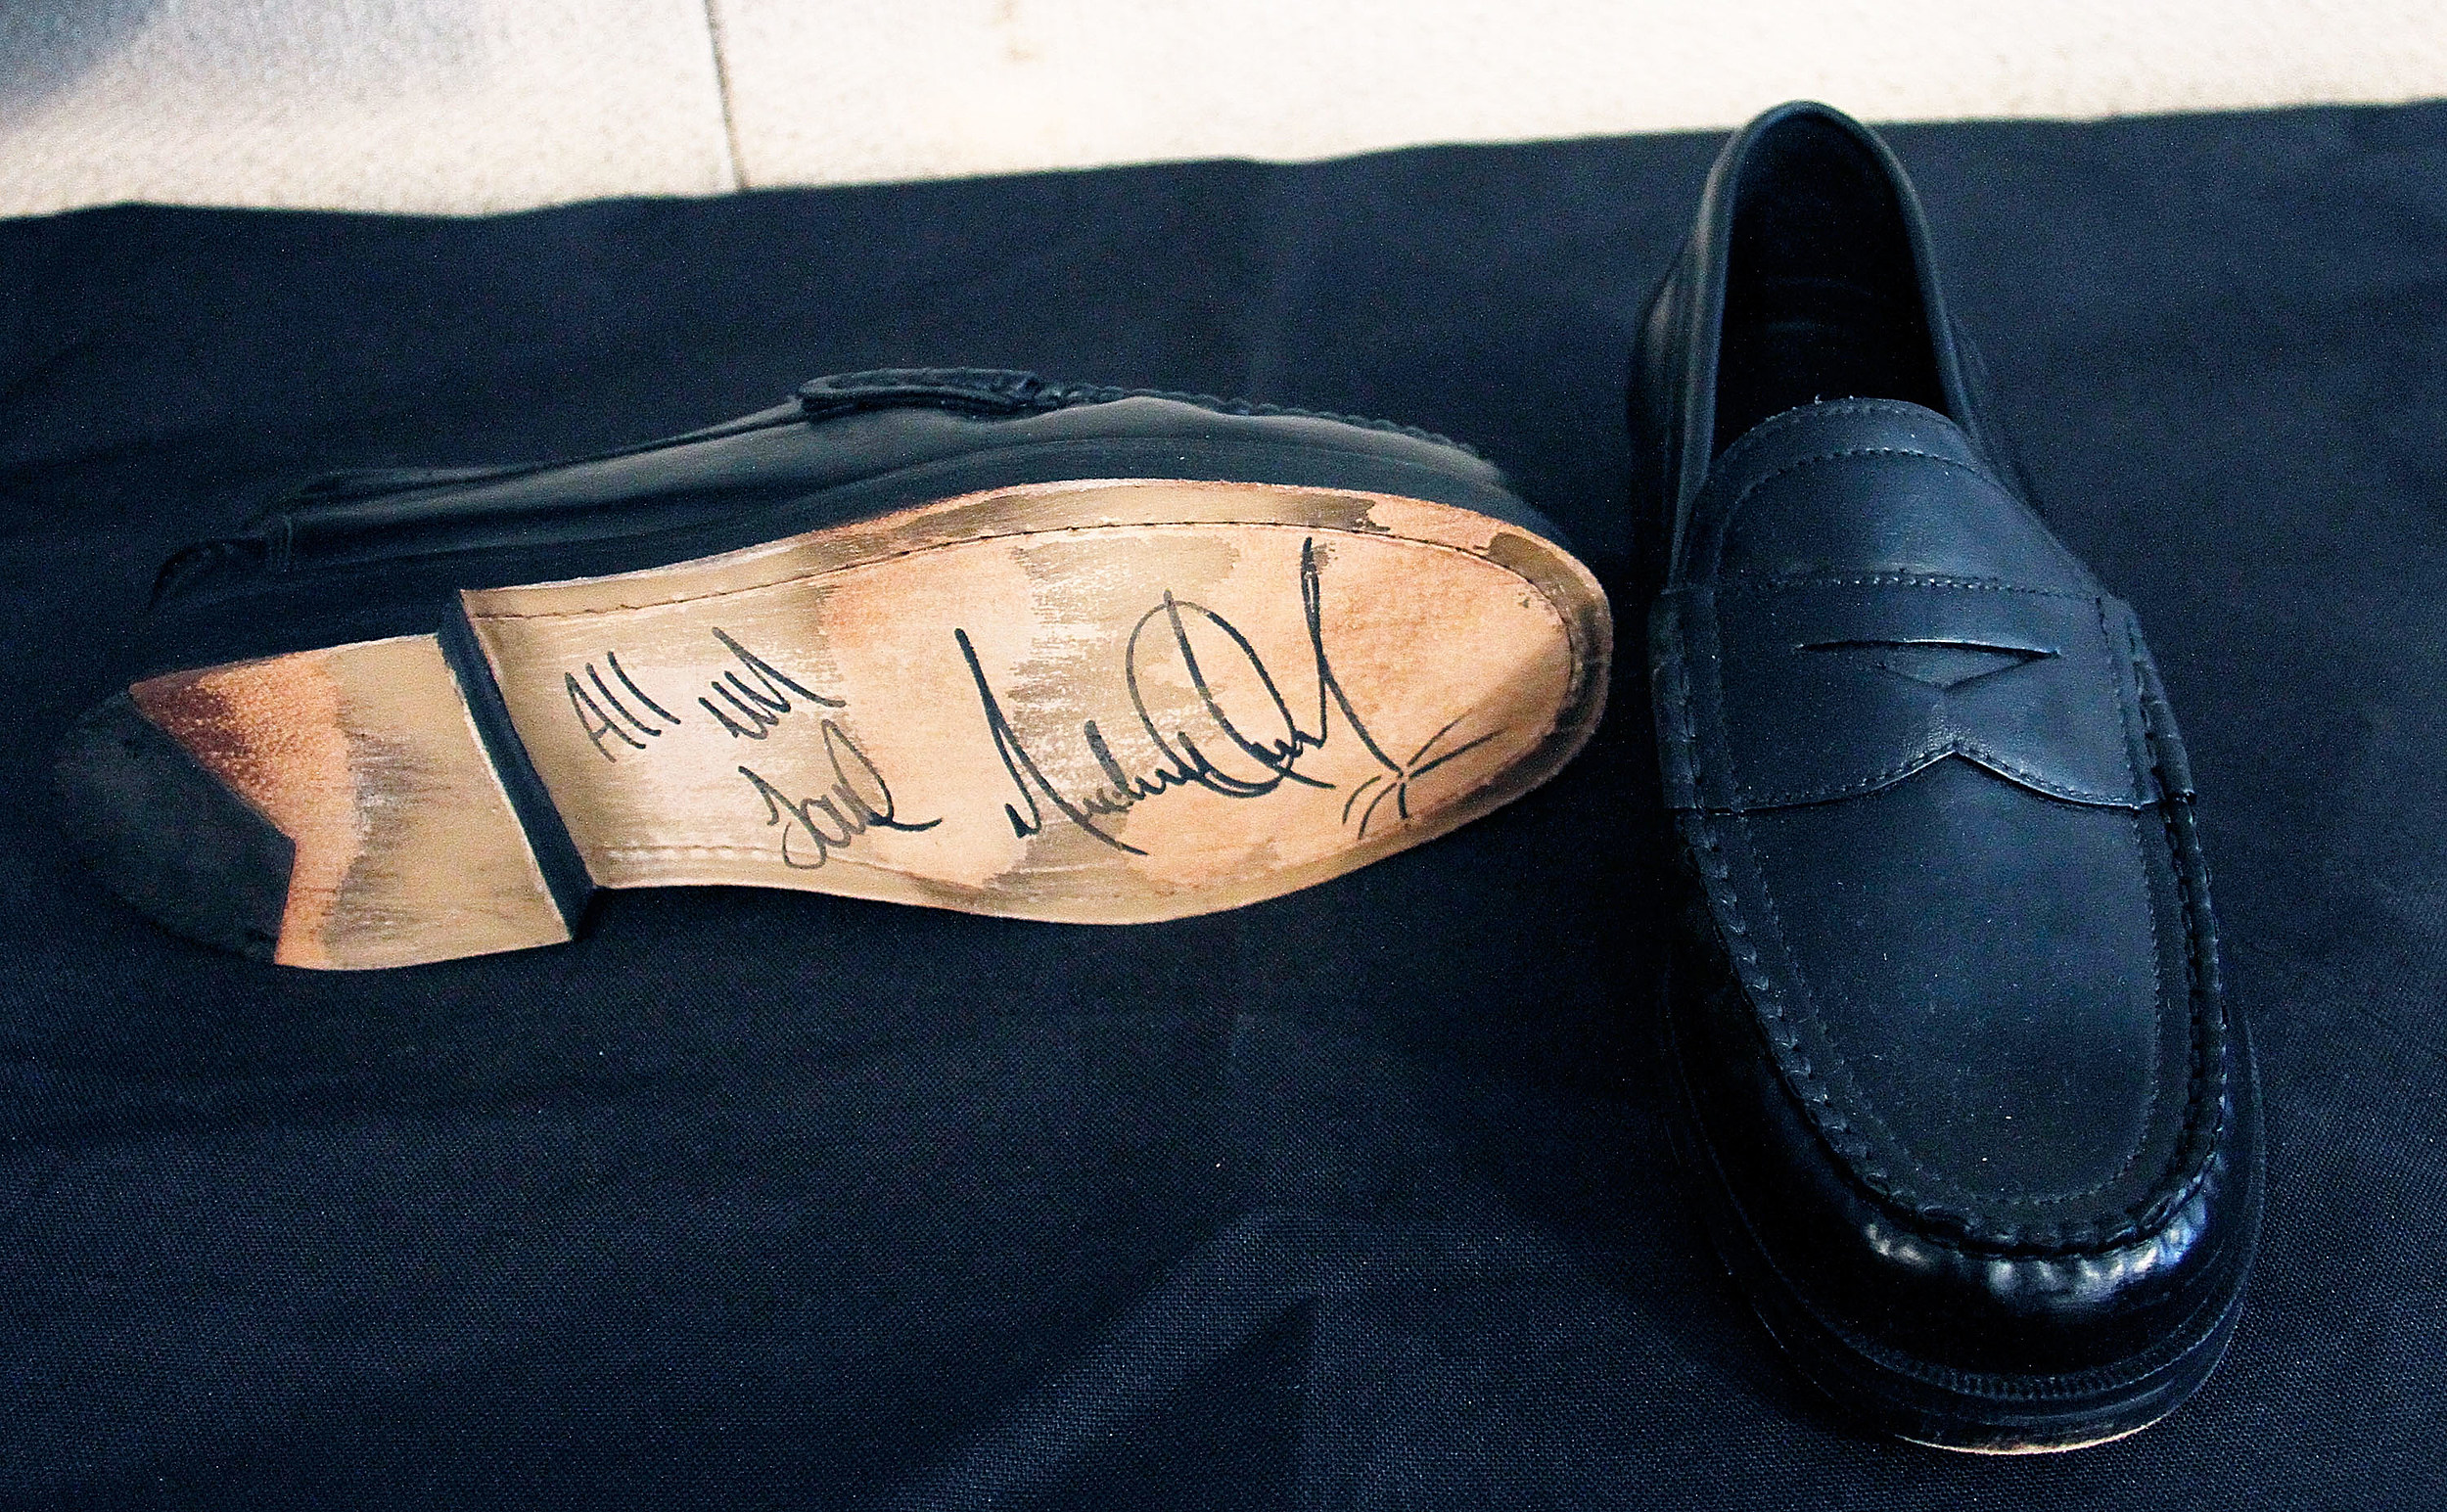 Michael Jackson S Moonwalk Shoes Going Up For Auction